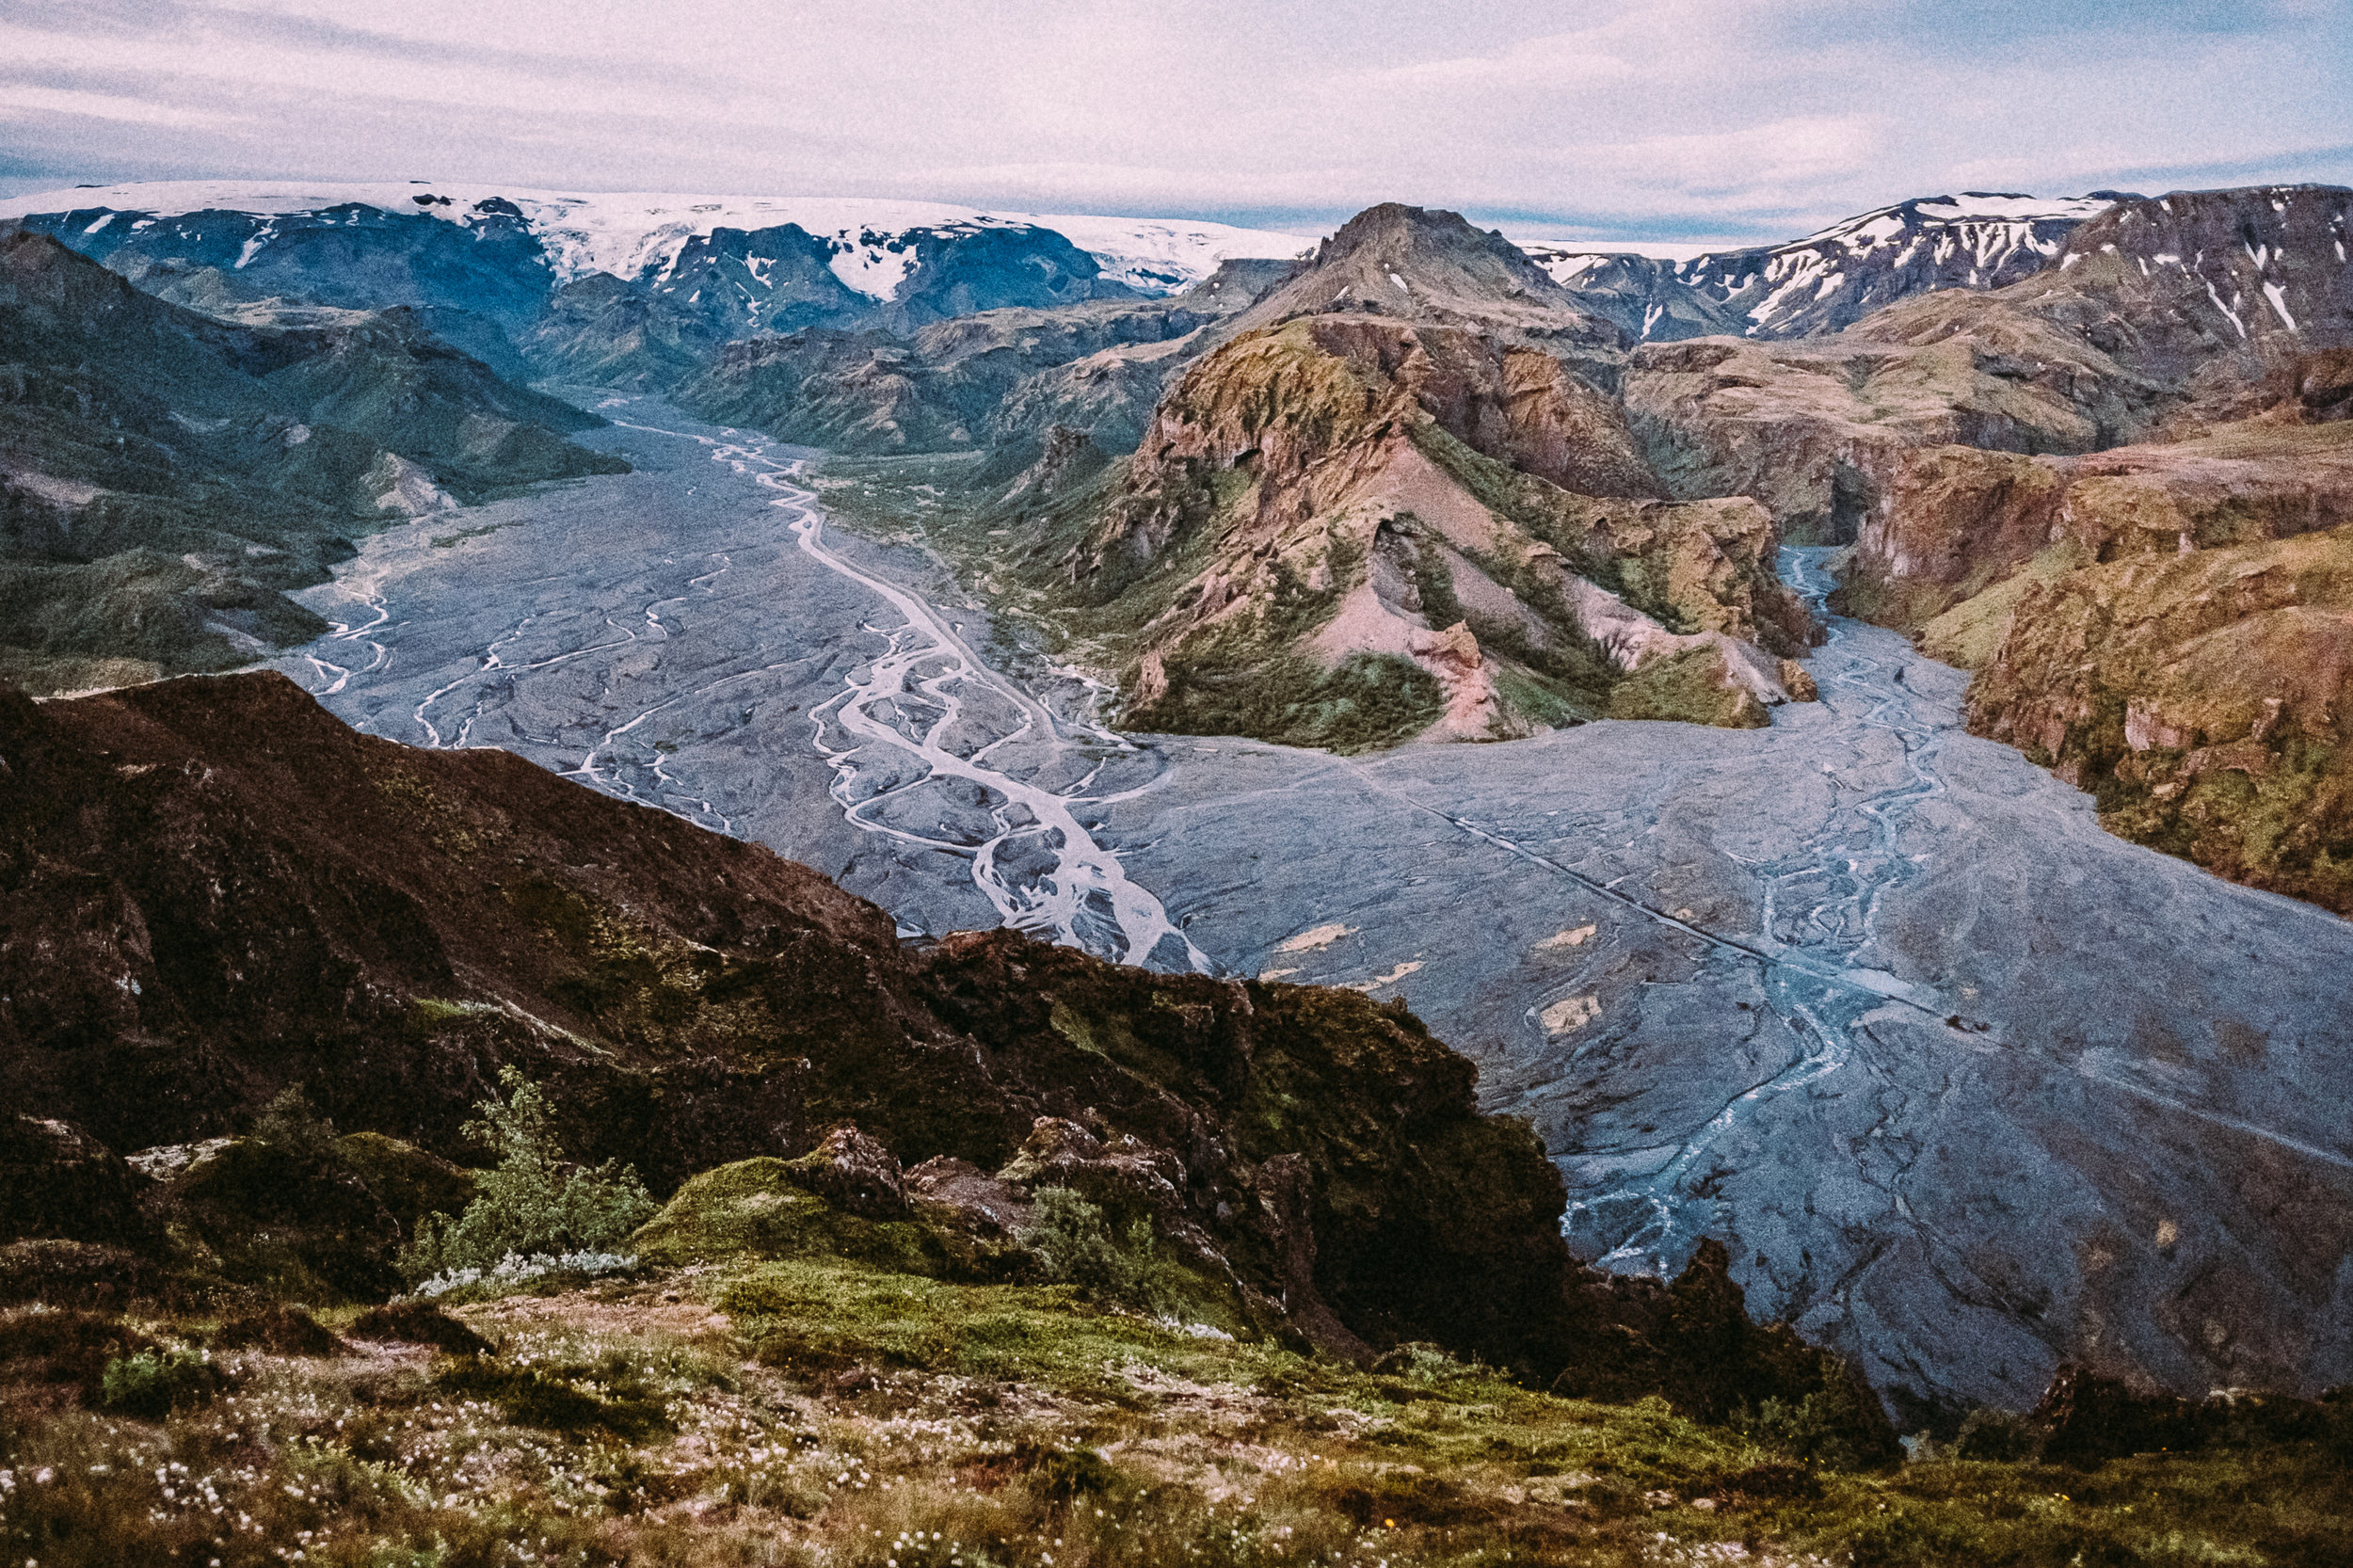 Porsmork [Thor's Valley] This is the view from Valahnjúkur -  [63.7122545,-19.5432259]  Fuji X-H1 + 16mm 1.4 lens